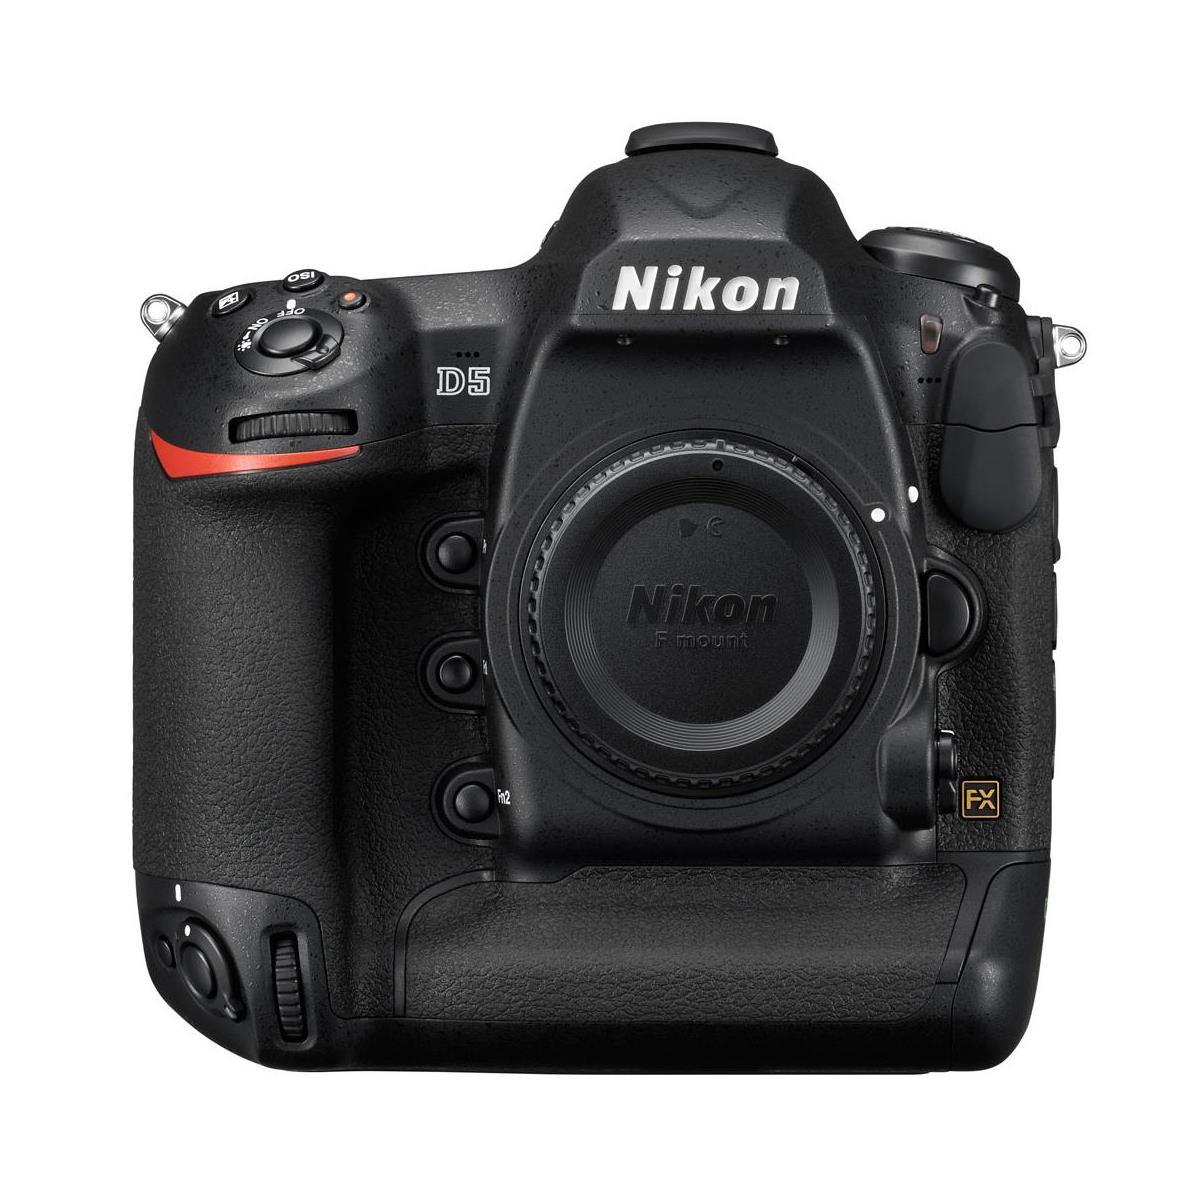 Camera The Most Expensive Dslr Camera 4 most expensive dslr cameras in 2016 alc the nikon d5 is an all around camera packed with features that allow you to take pictures almost any kind of shooting condition